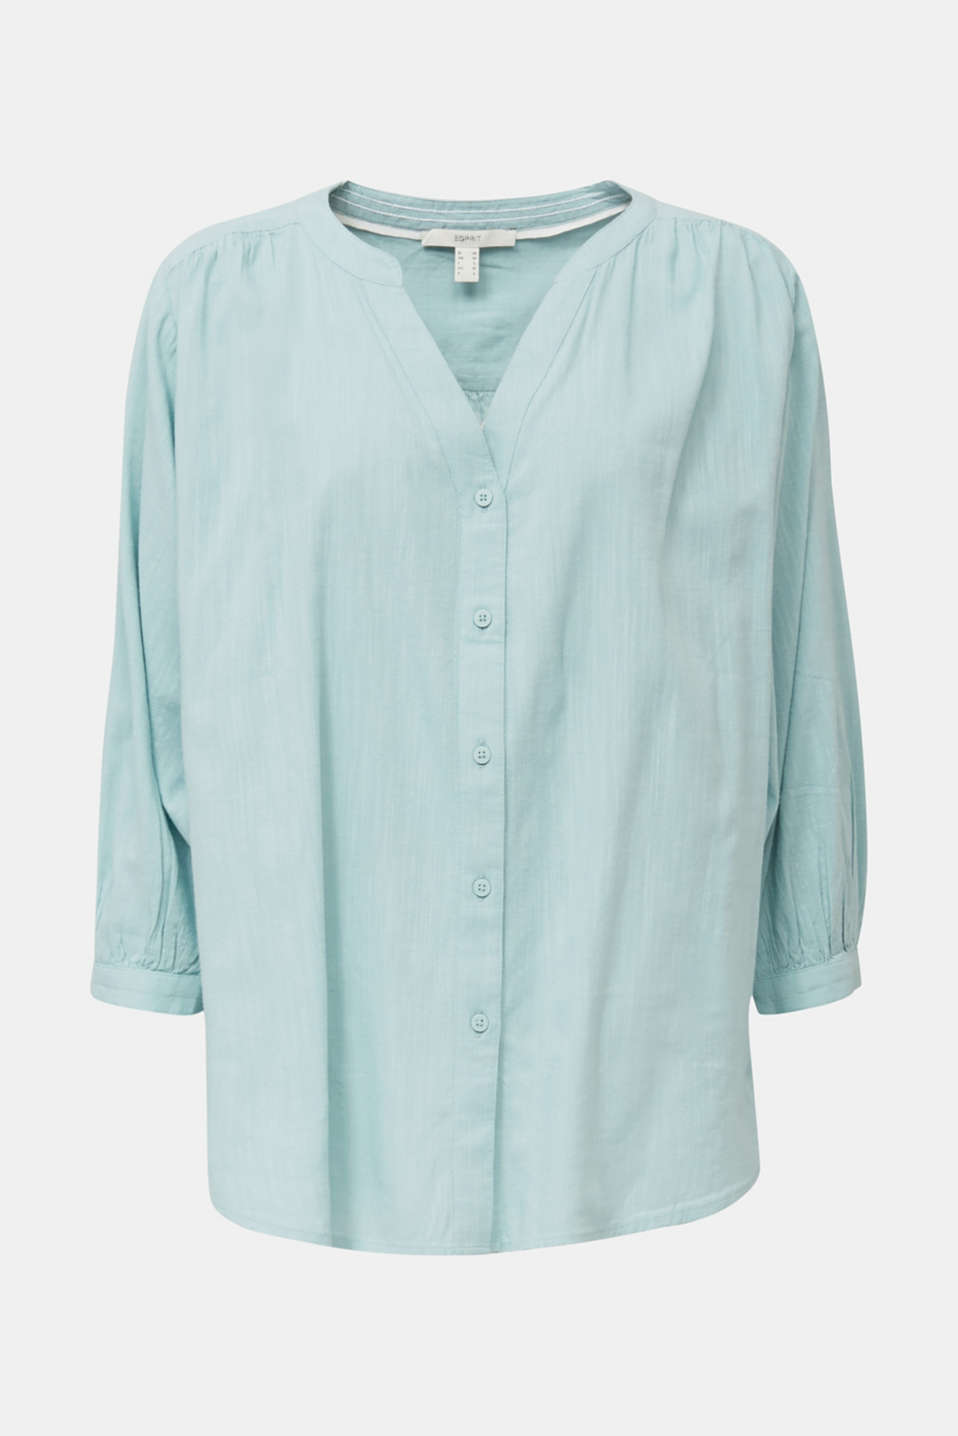 Textured blouse with batwing sleeves, LIGHT AQUA GREEN, detail image number 7